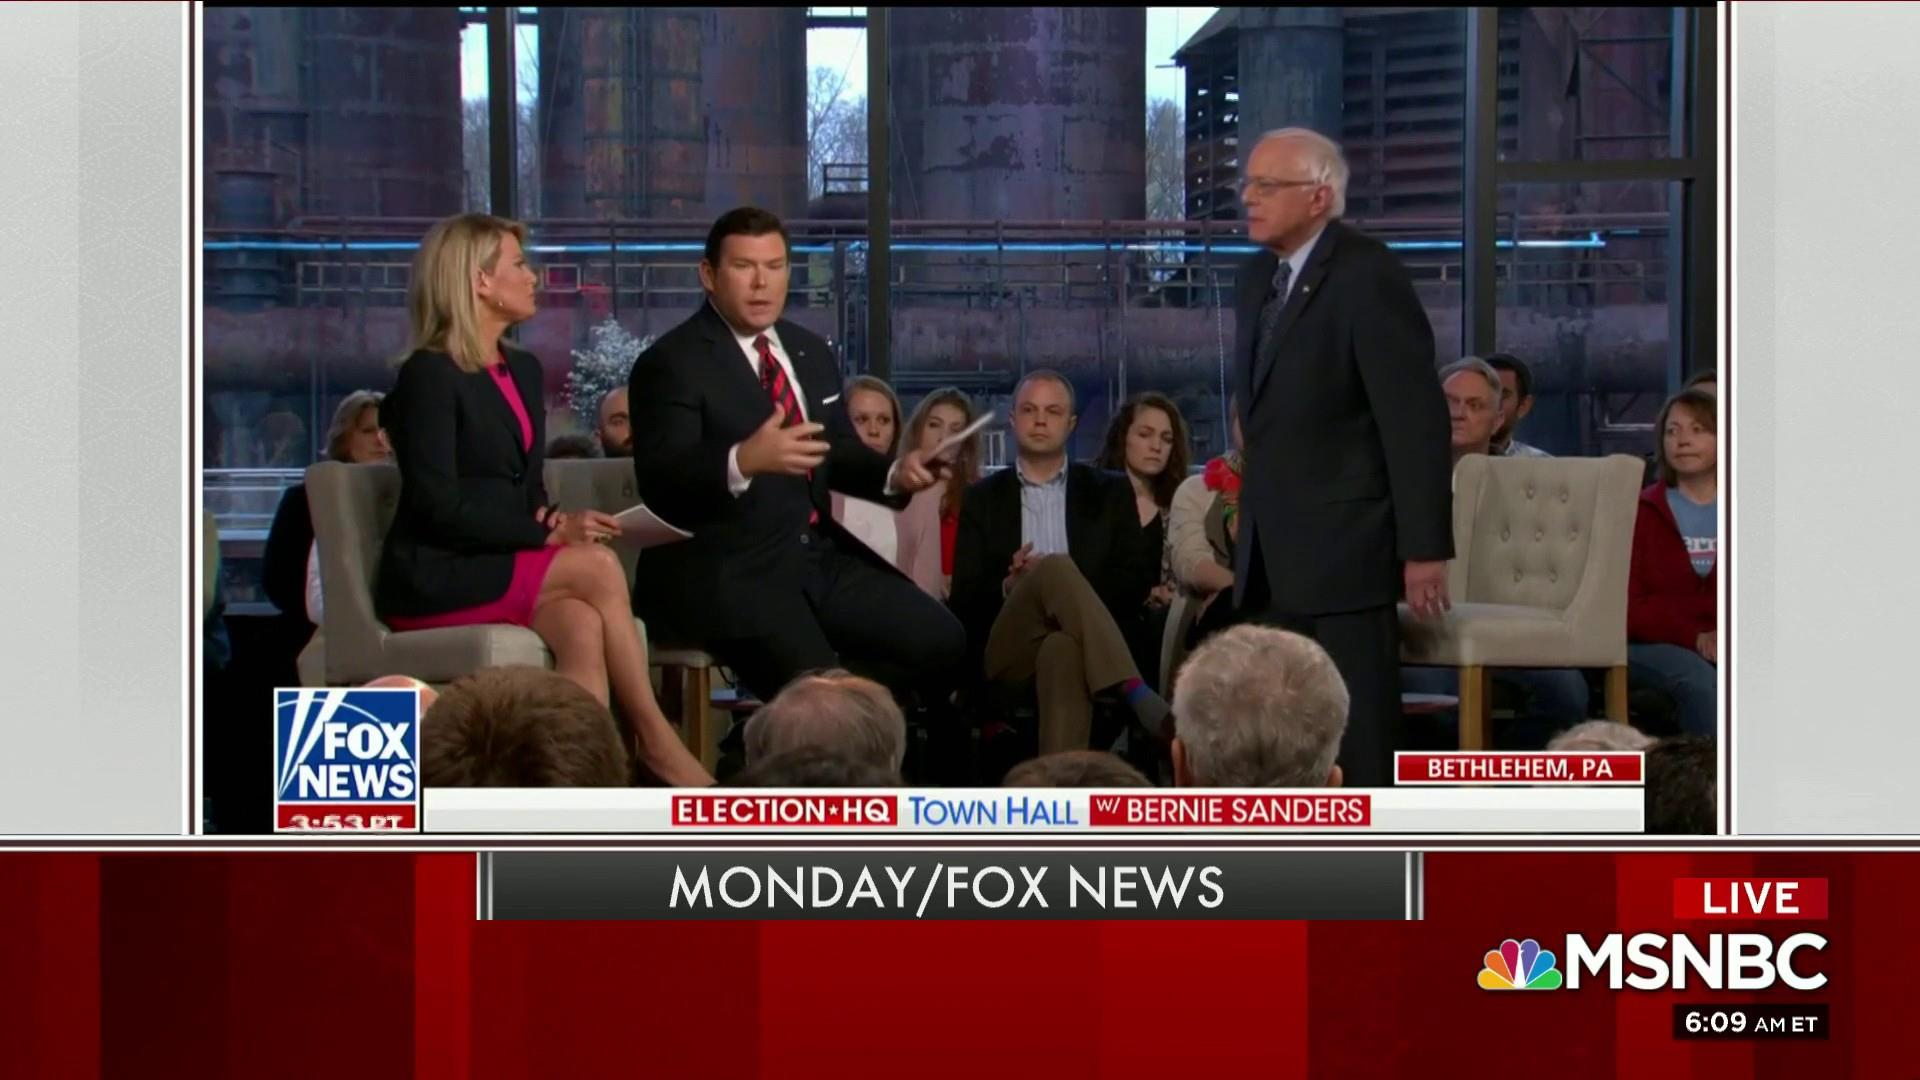 'Crazy Bernie' appears to be getting under Trump's skin